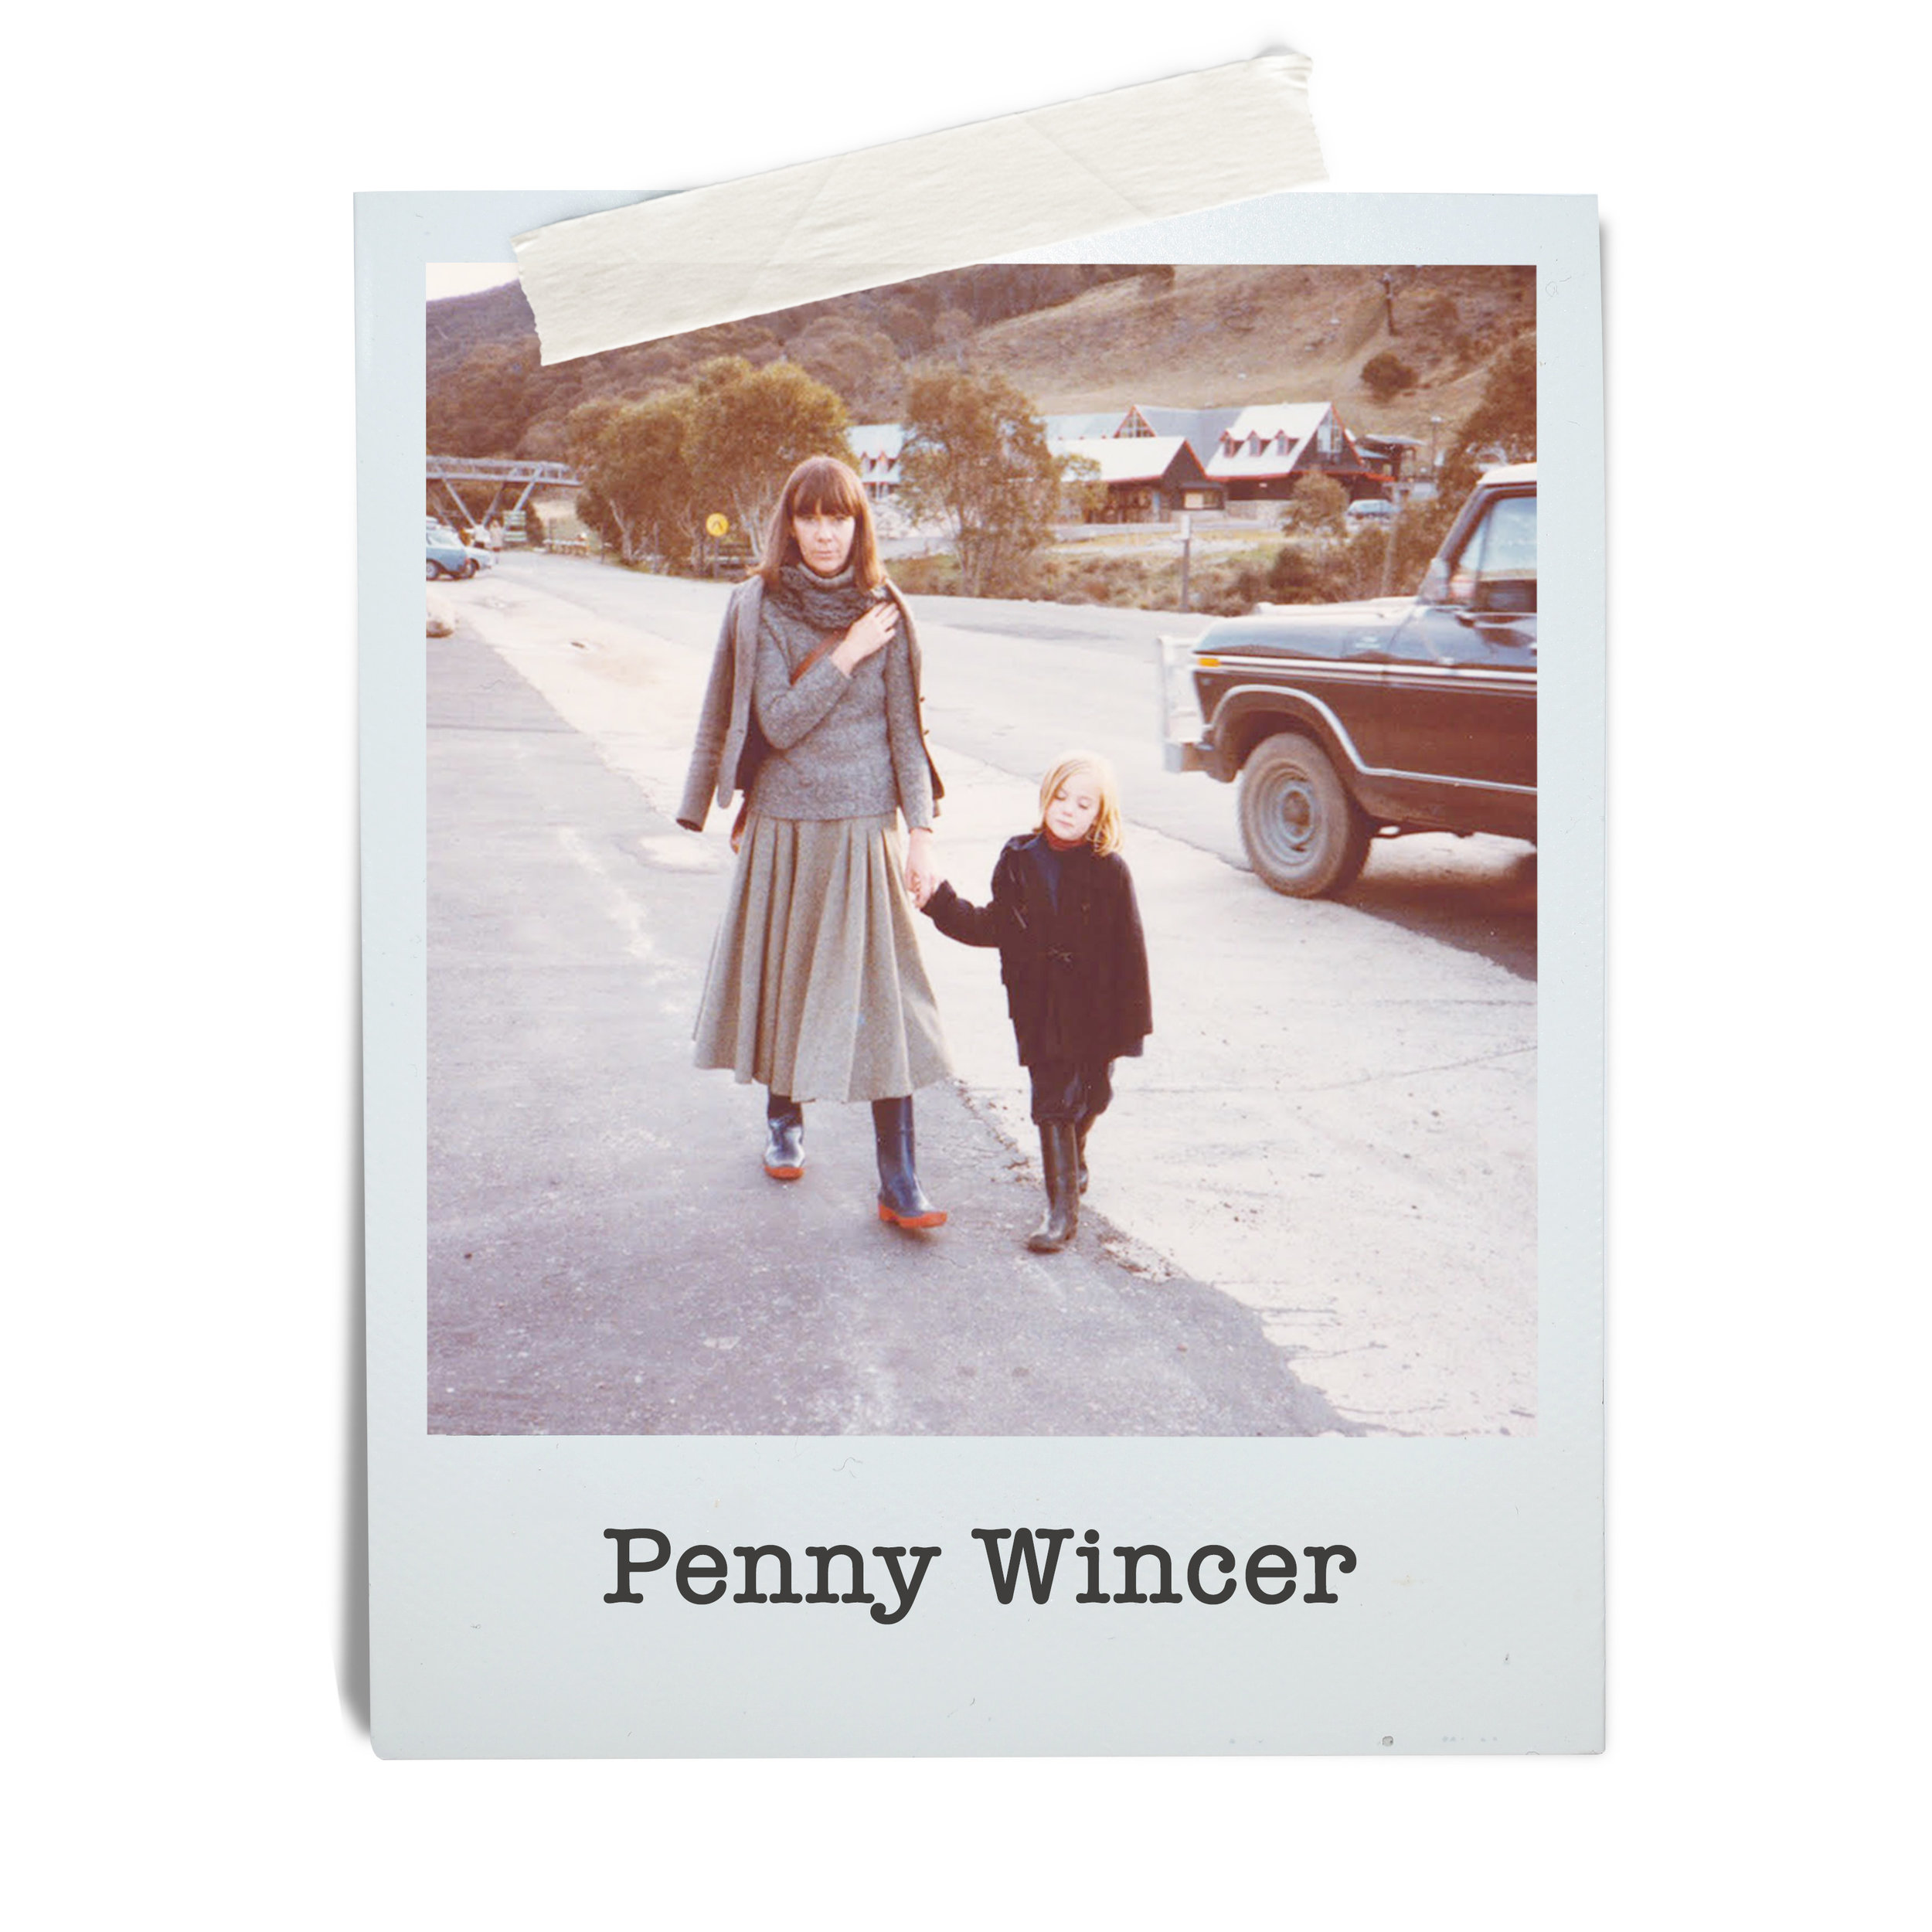 Penny Wincer